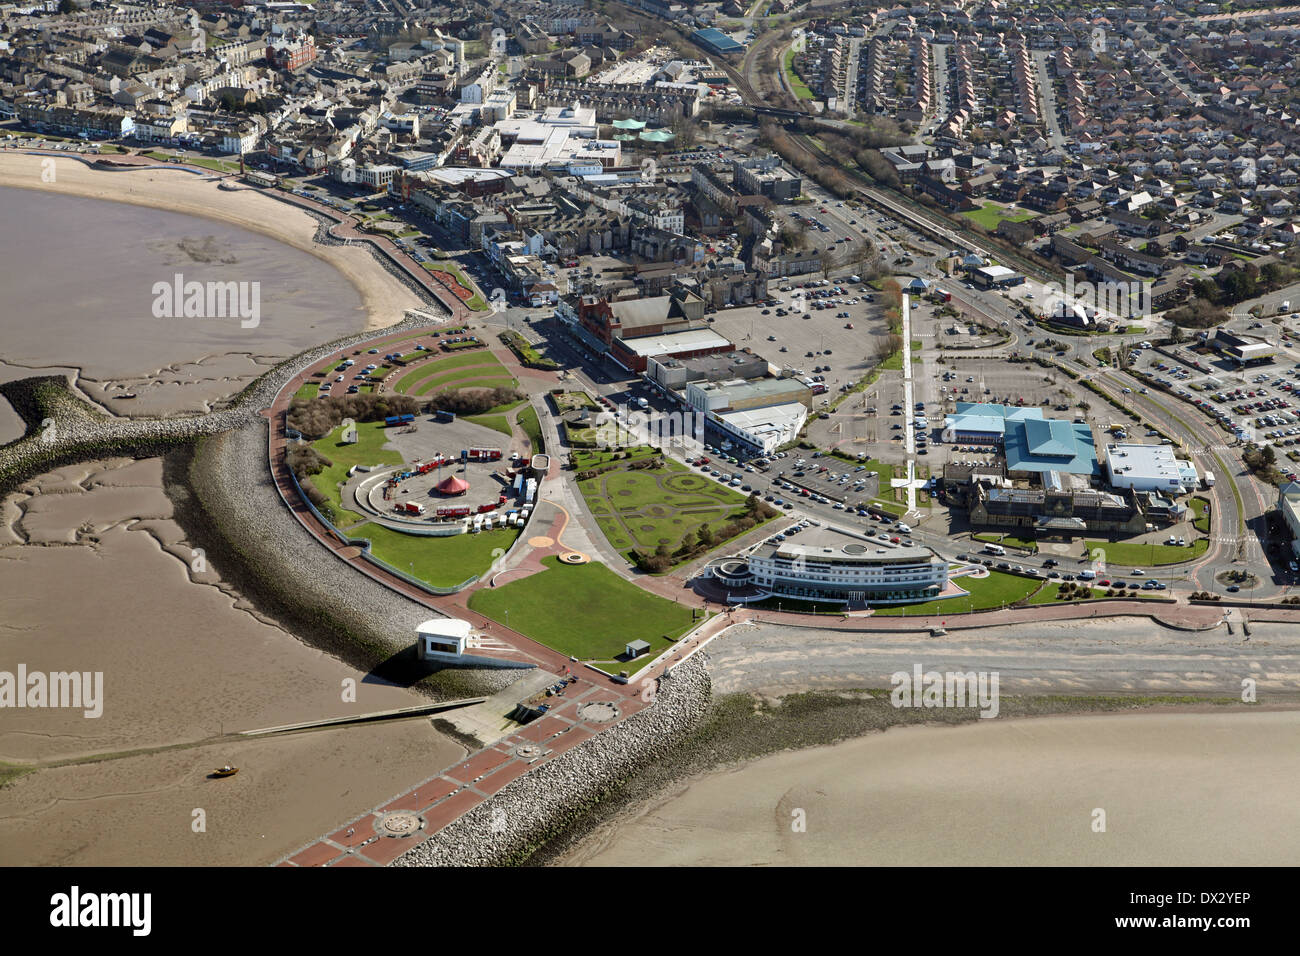 aerial view of Morecambe town, Morecambe Leisure Park, seafront and beaches in Lancashire - Stock Image